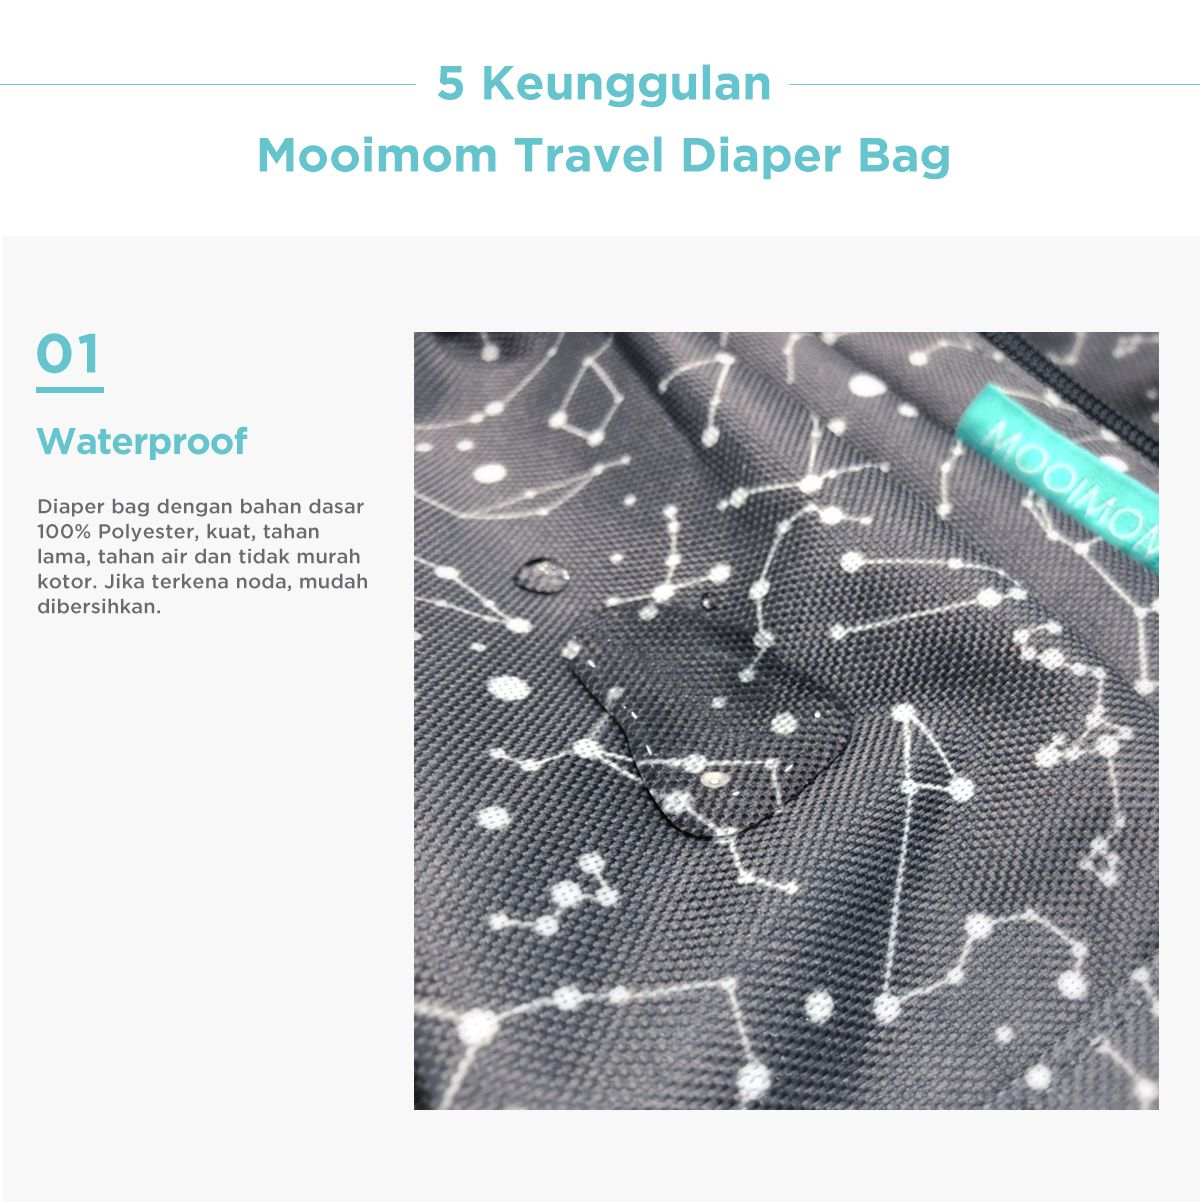 Diaper bag mooimom